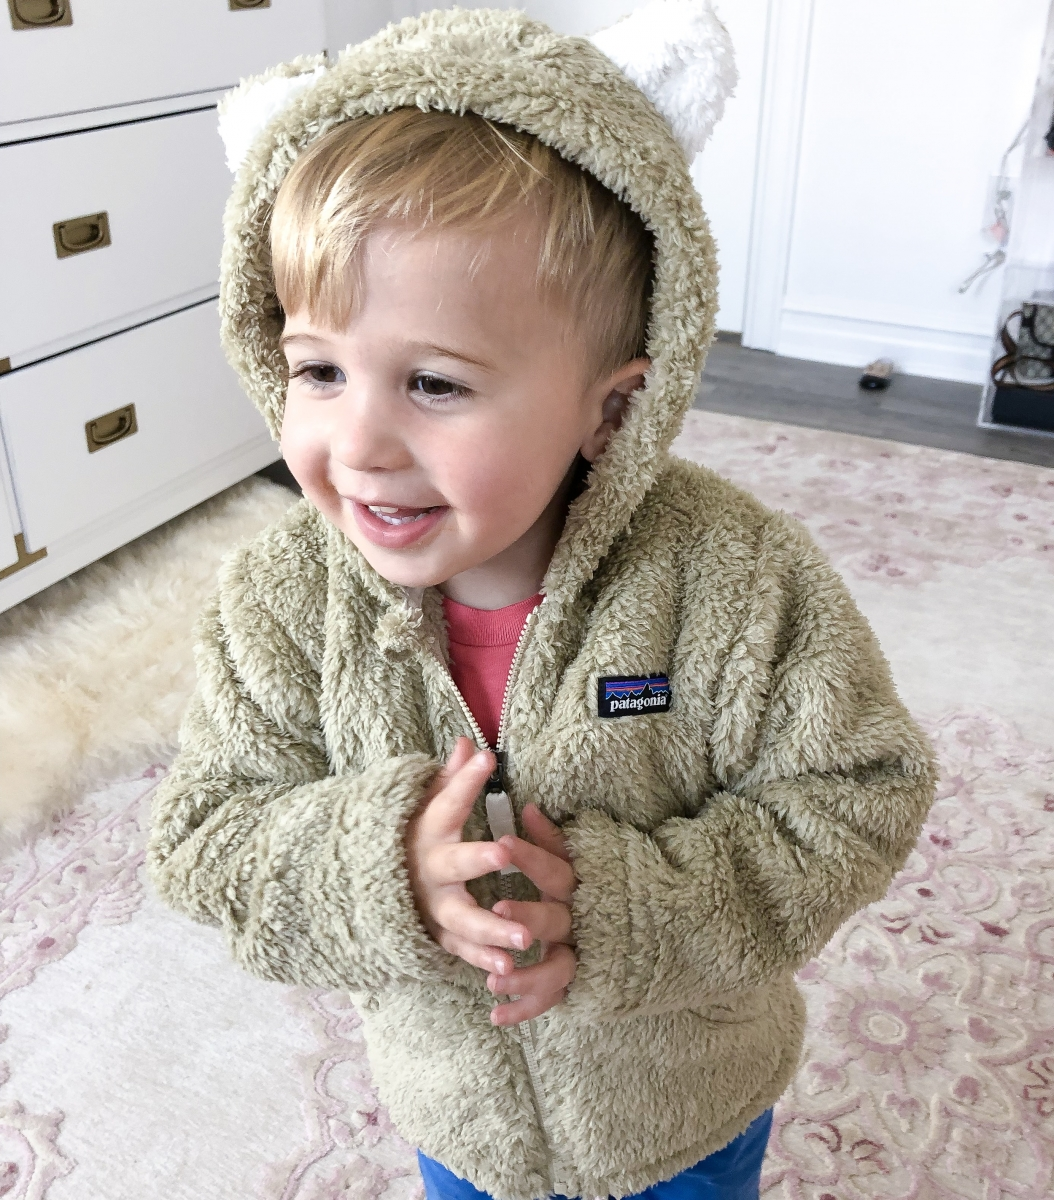 NSALE 2019 Toddler Patagonia, Nordstrom Anniversary Sale 2019 baby items, emily gemma